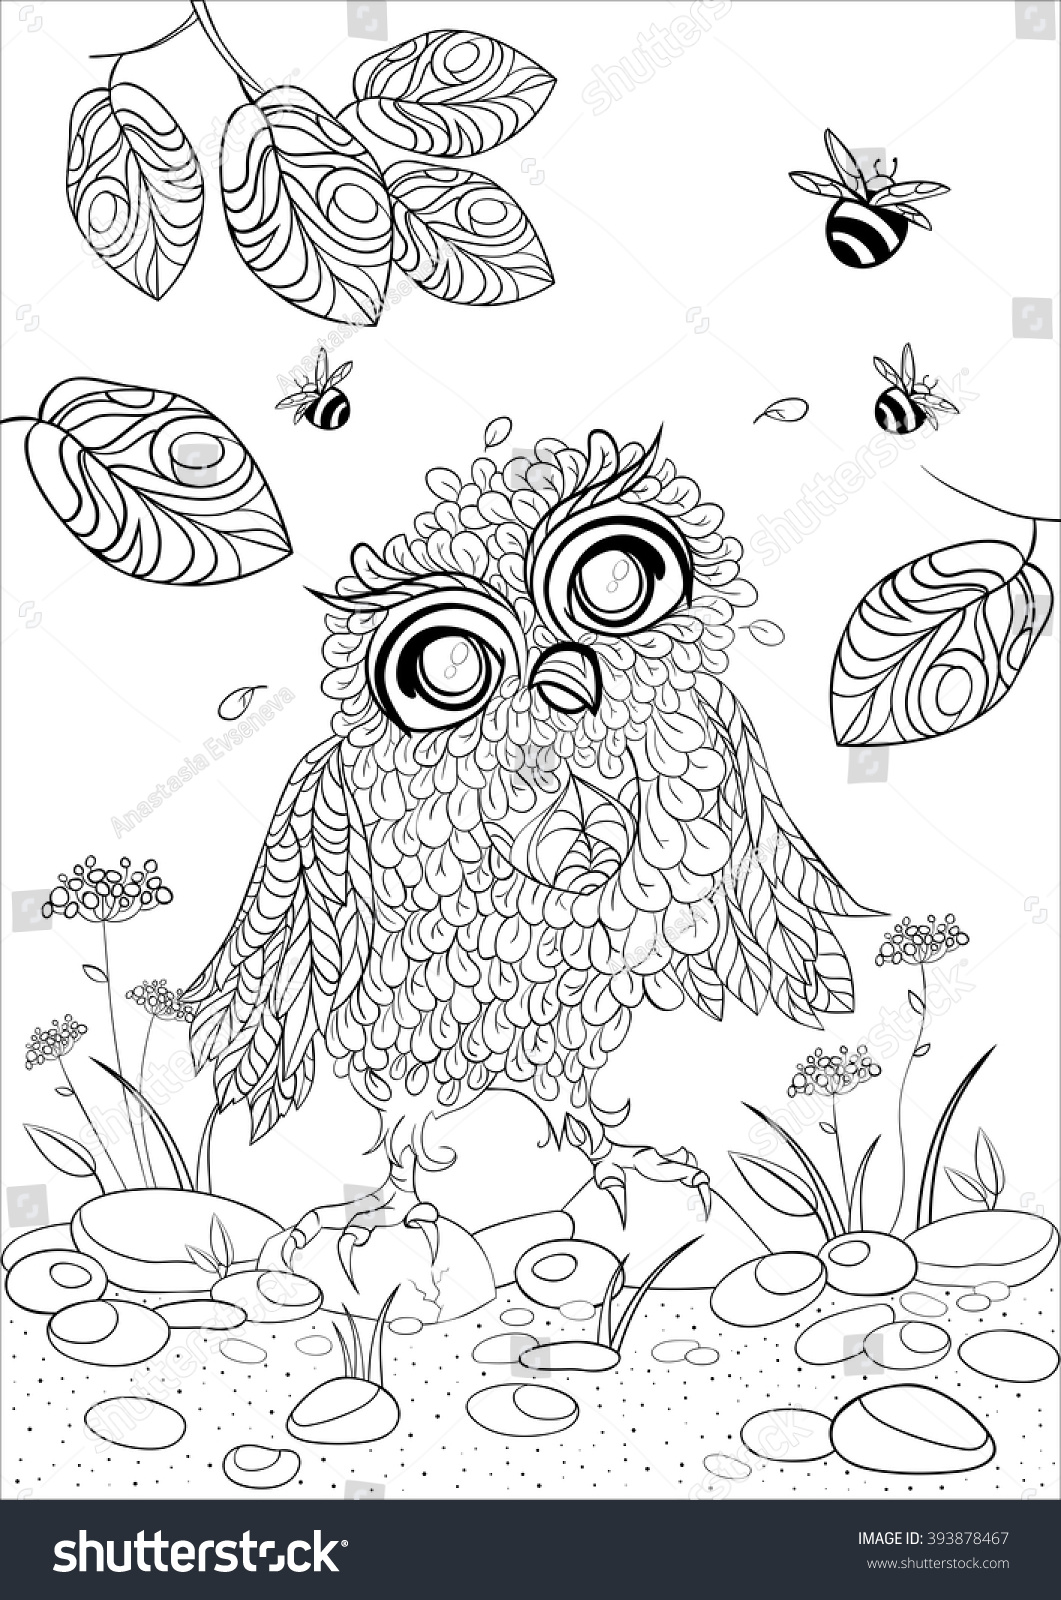 A4 Monochrome Vector Zentangle Stylized Abstract Wise Owl And Fly Bee Art Color